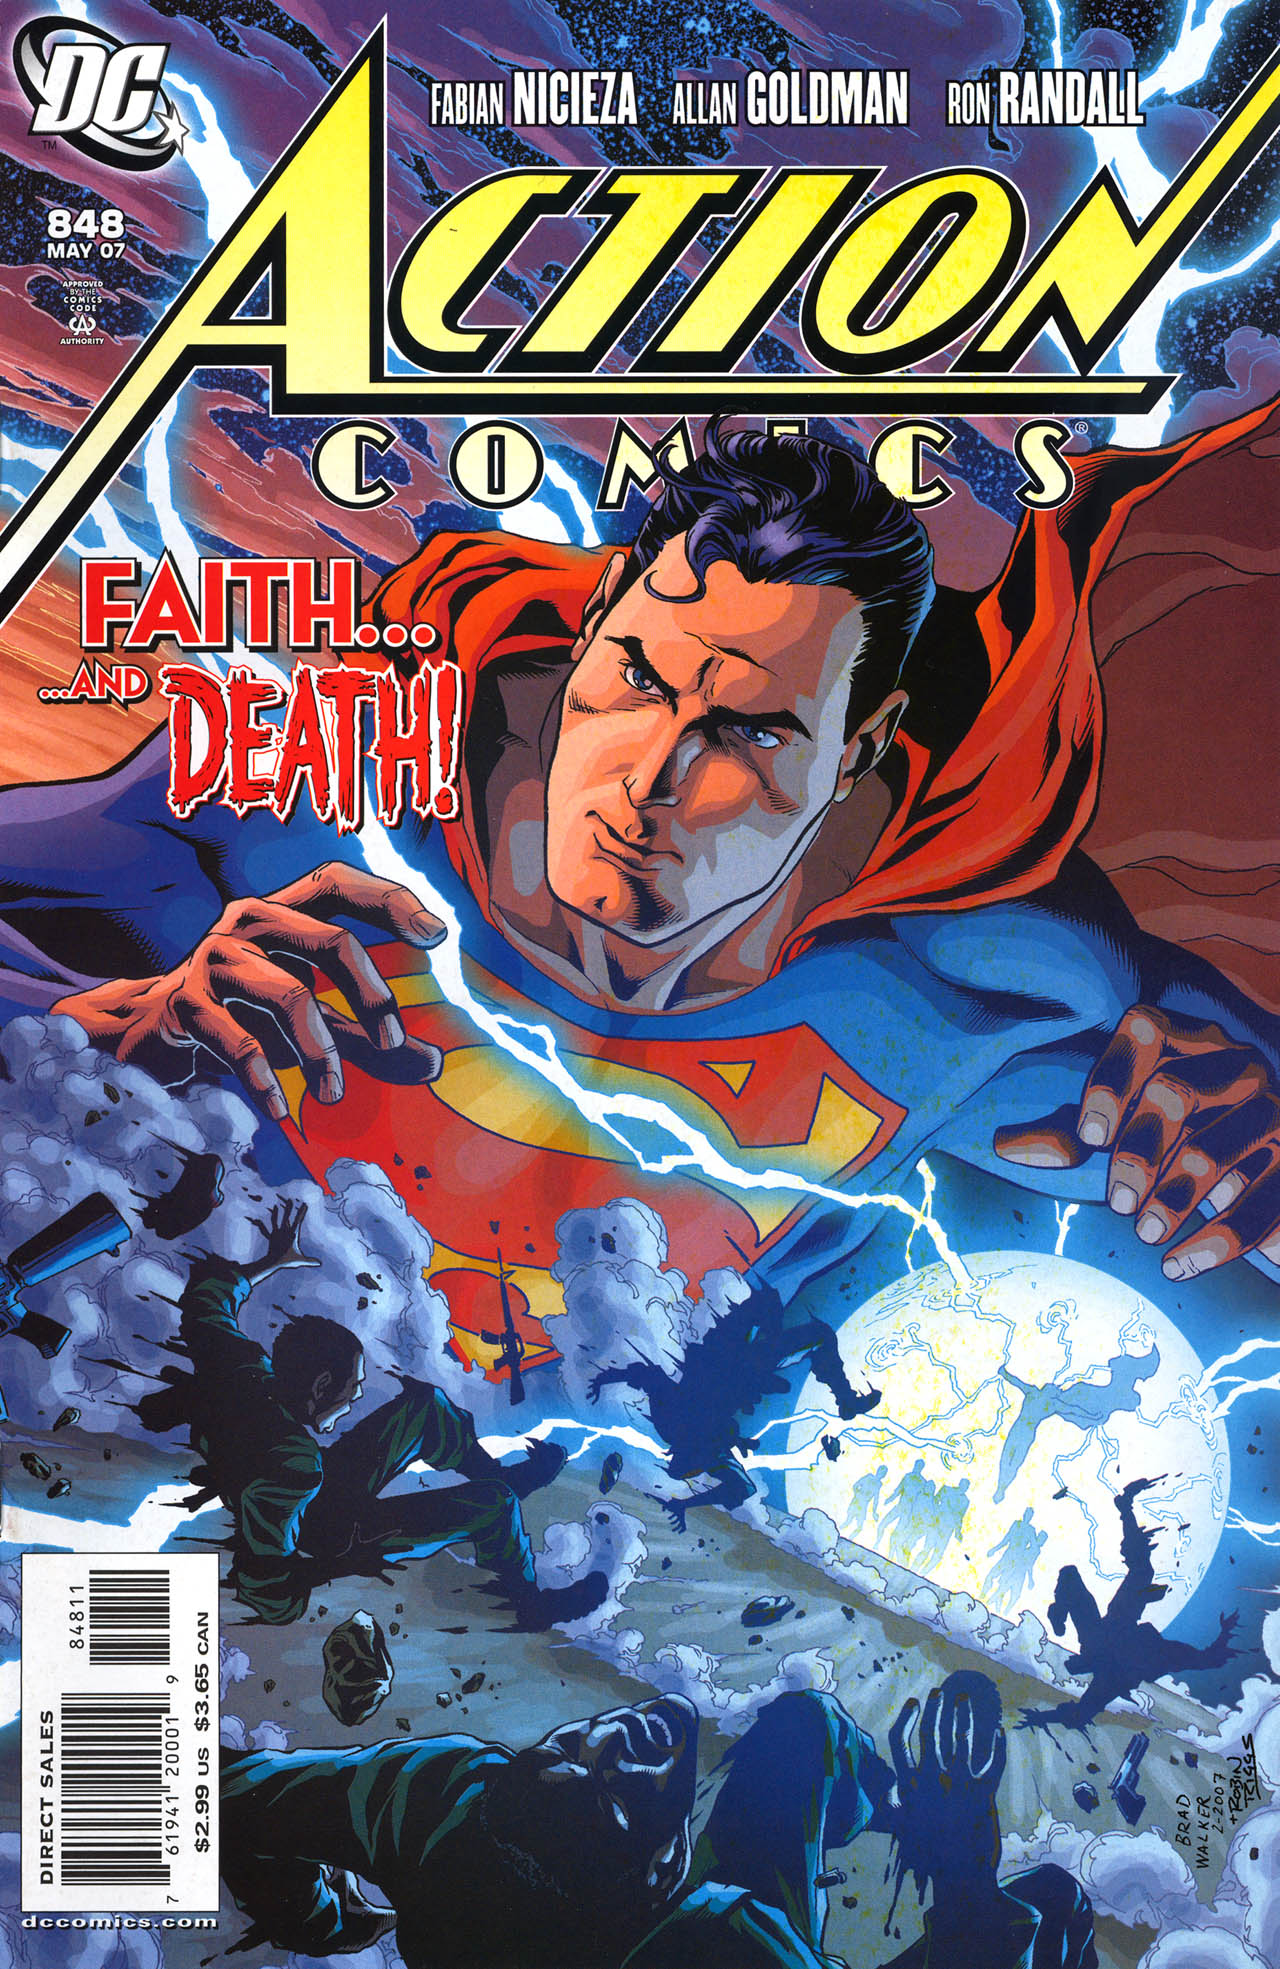 Read online Action Comics (1938) comic -  Issue #848 - 1